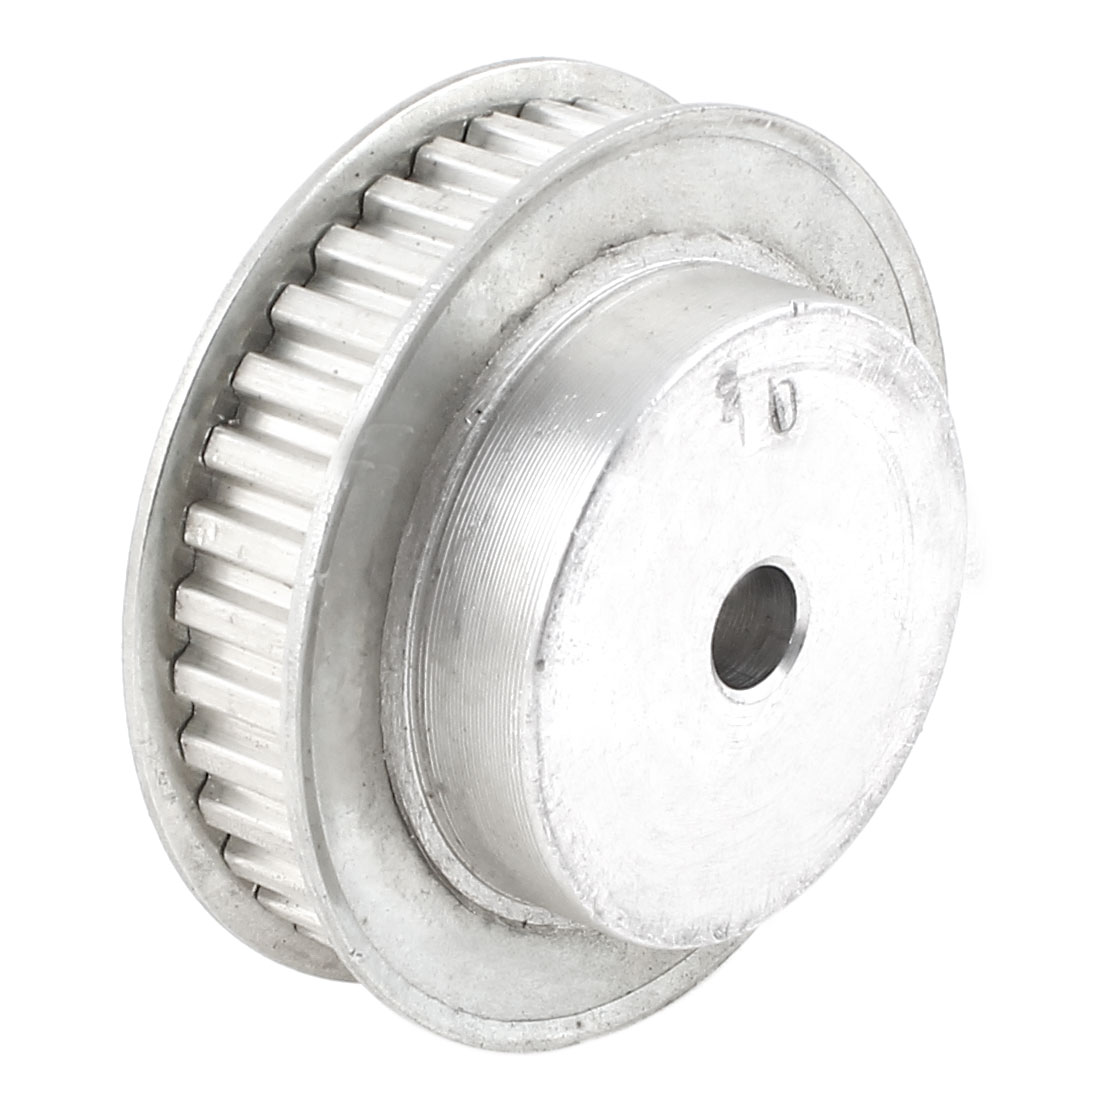 XL36 36 Teeth 8mm Pilot Bore 5.08mm Pitch Aluminum Alloy Groove Timing Pulley for 11mm Width Belt